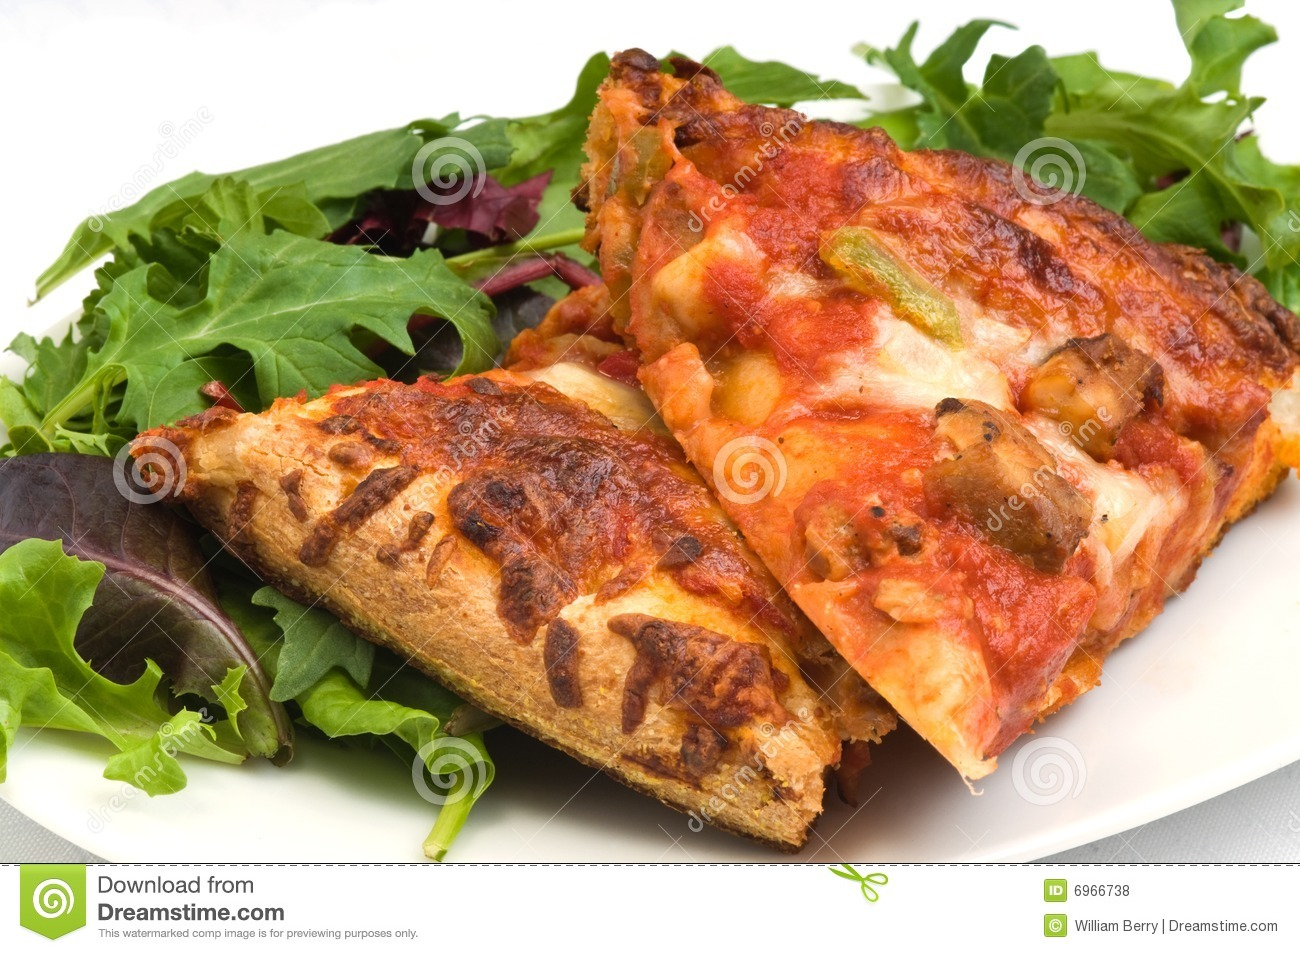 Homemade Pizza And Salad Royalty Free Stock Photos - Image: 6966738